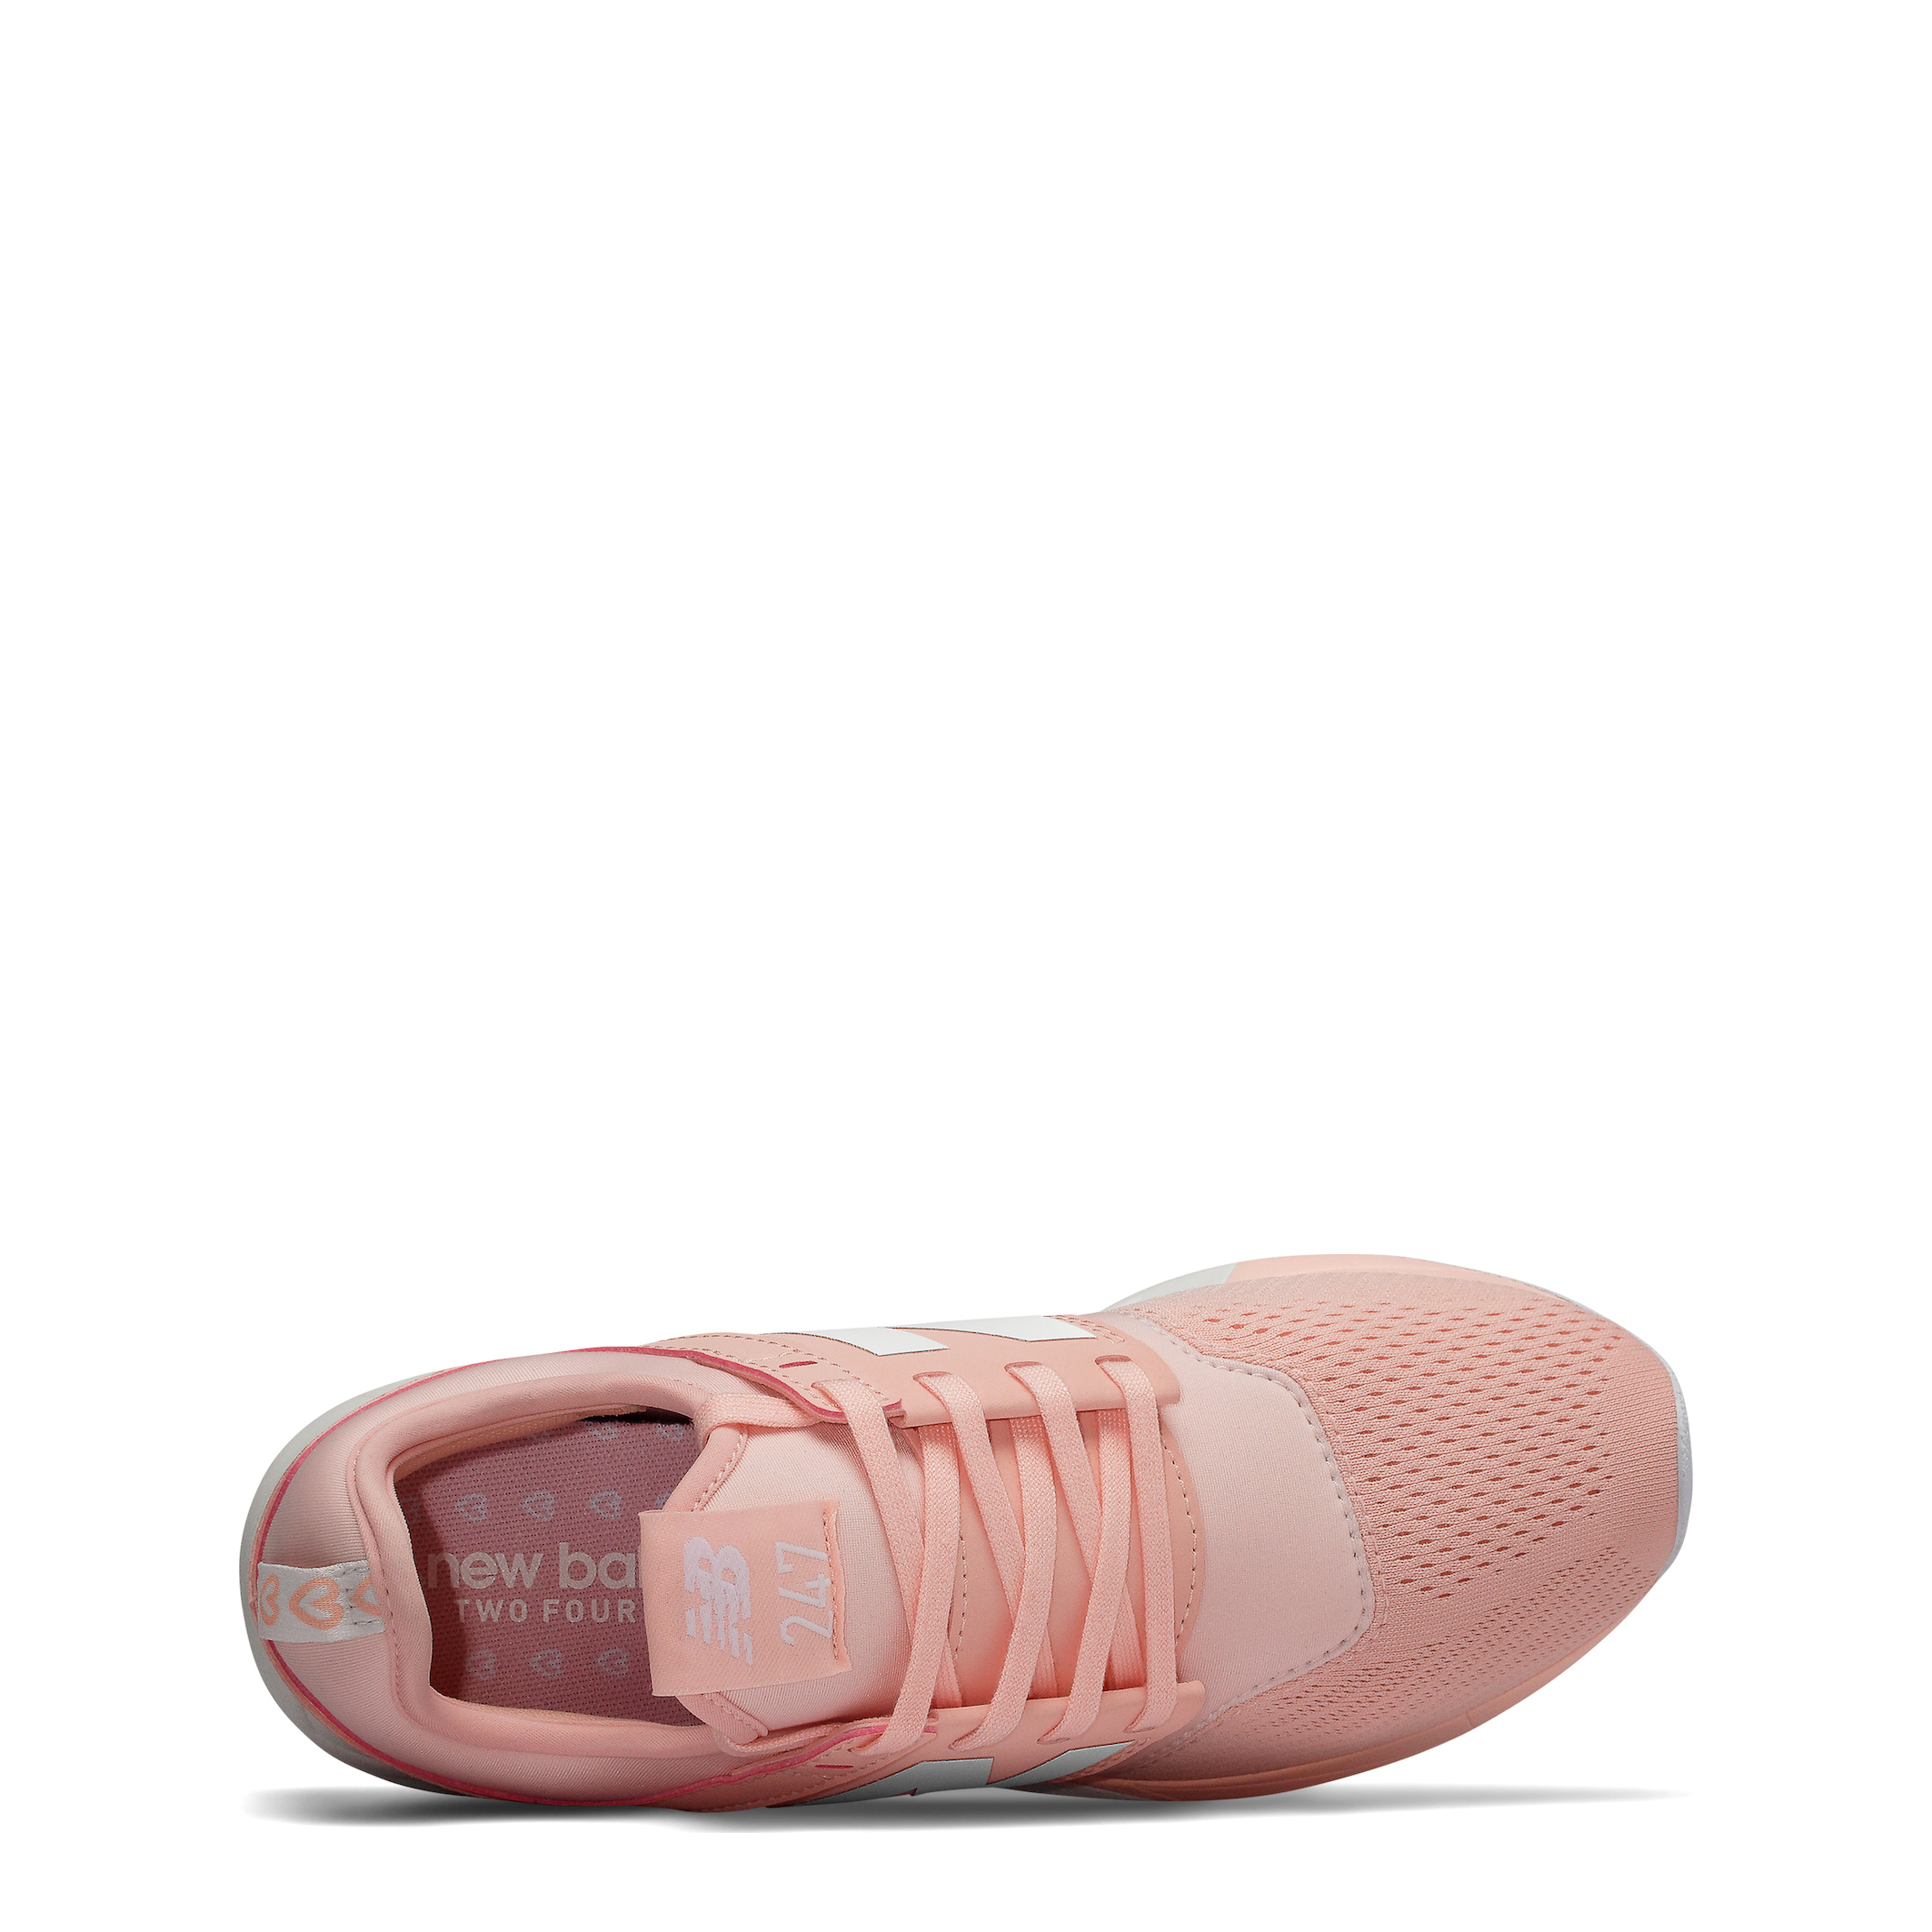 Baskets / Sneakers  New balance WRL247 pink